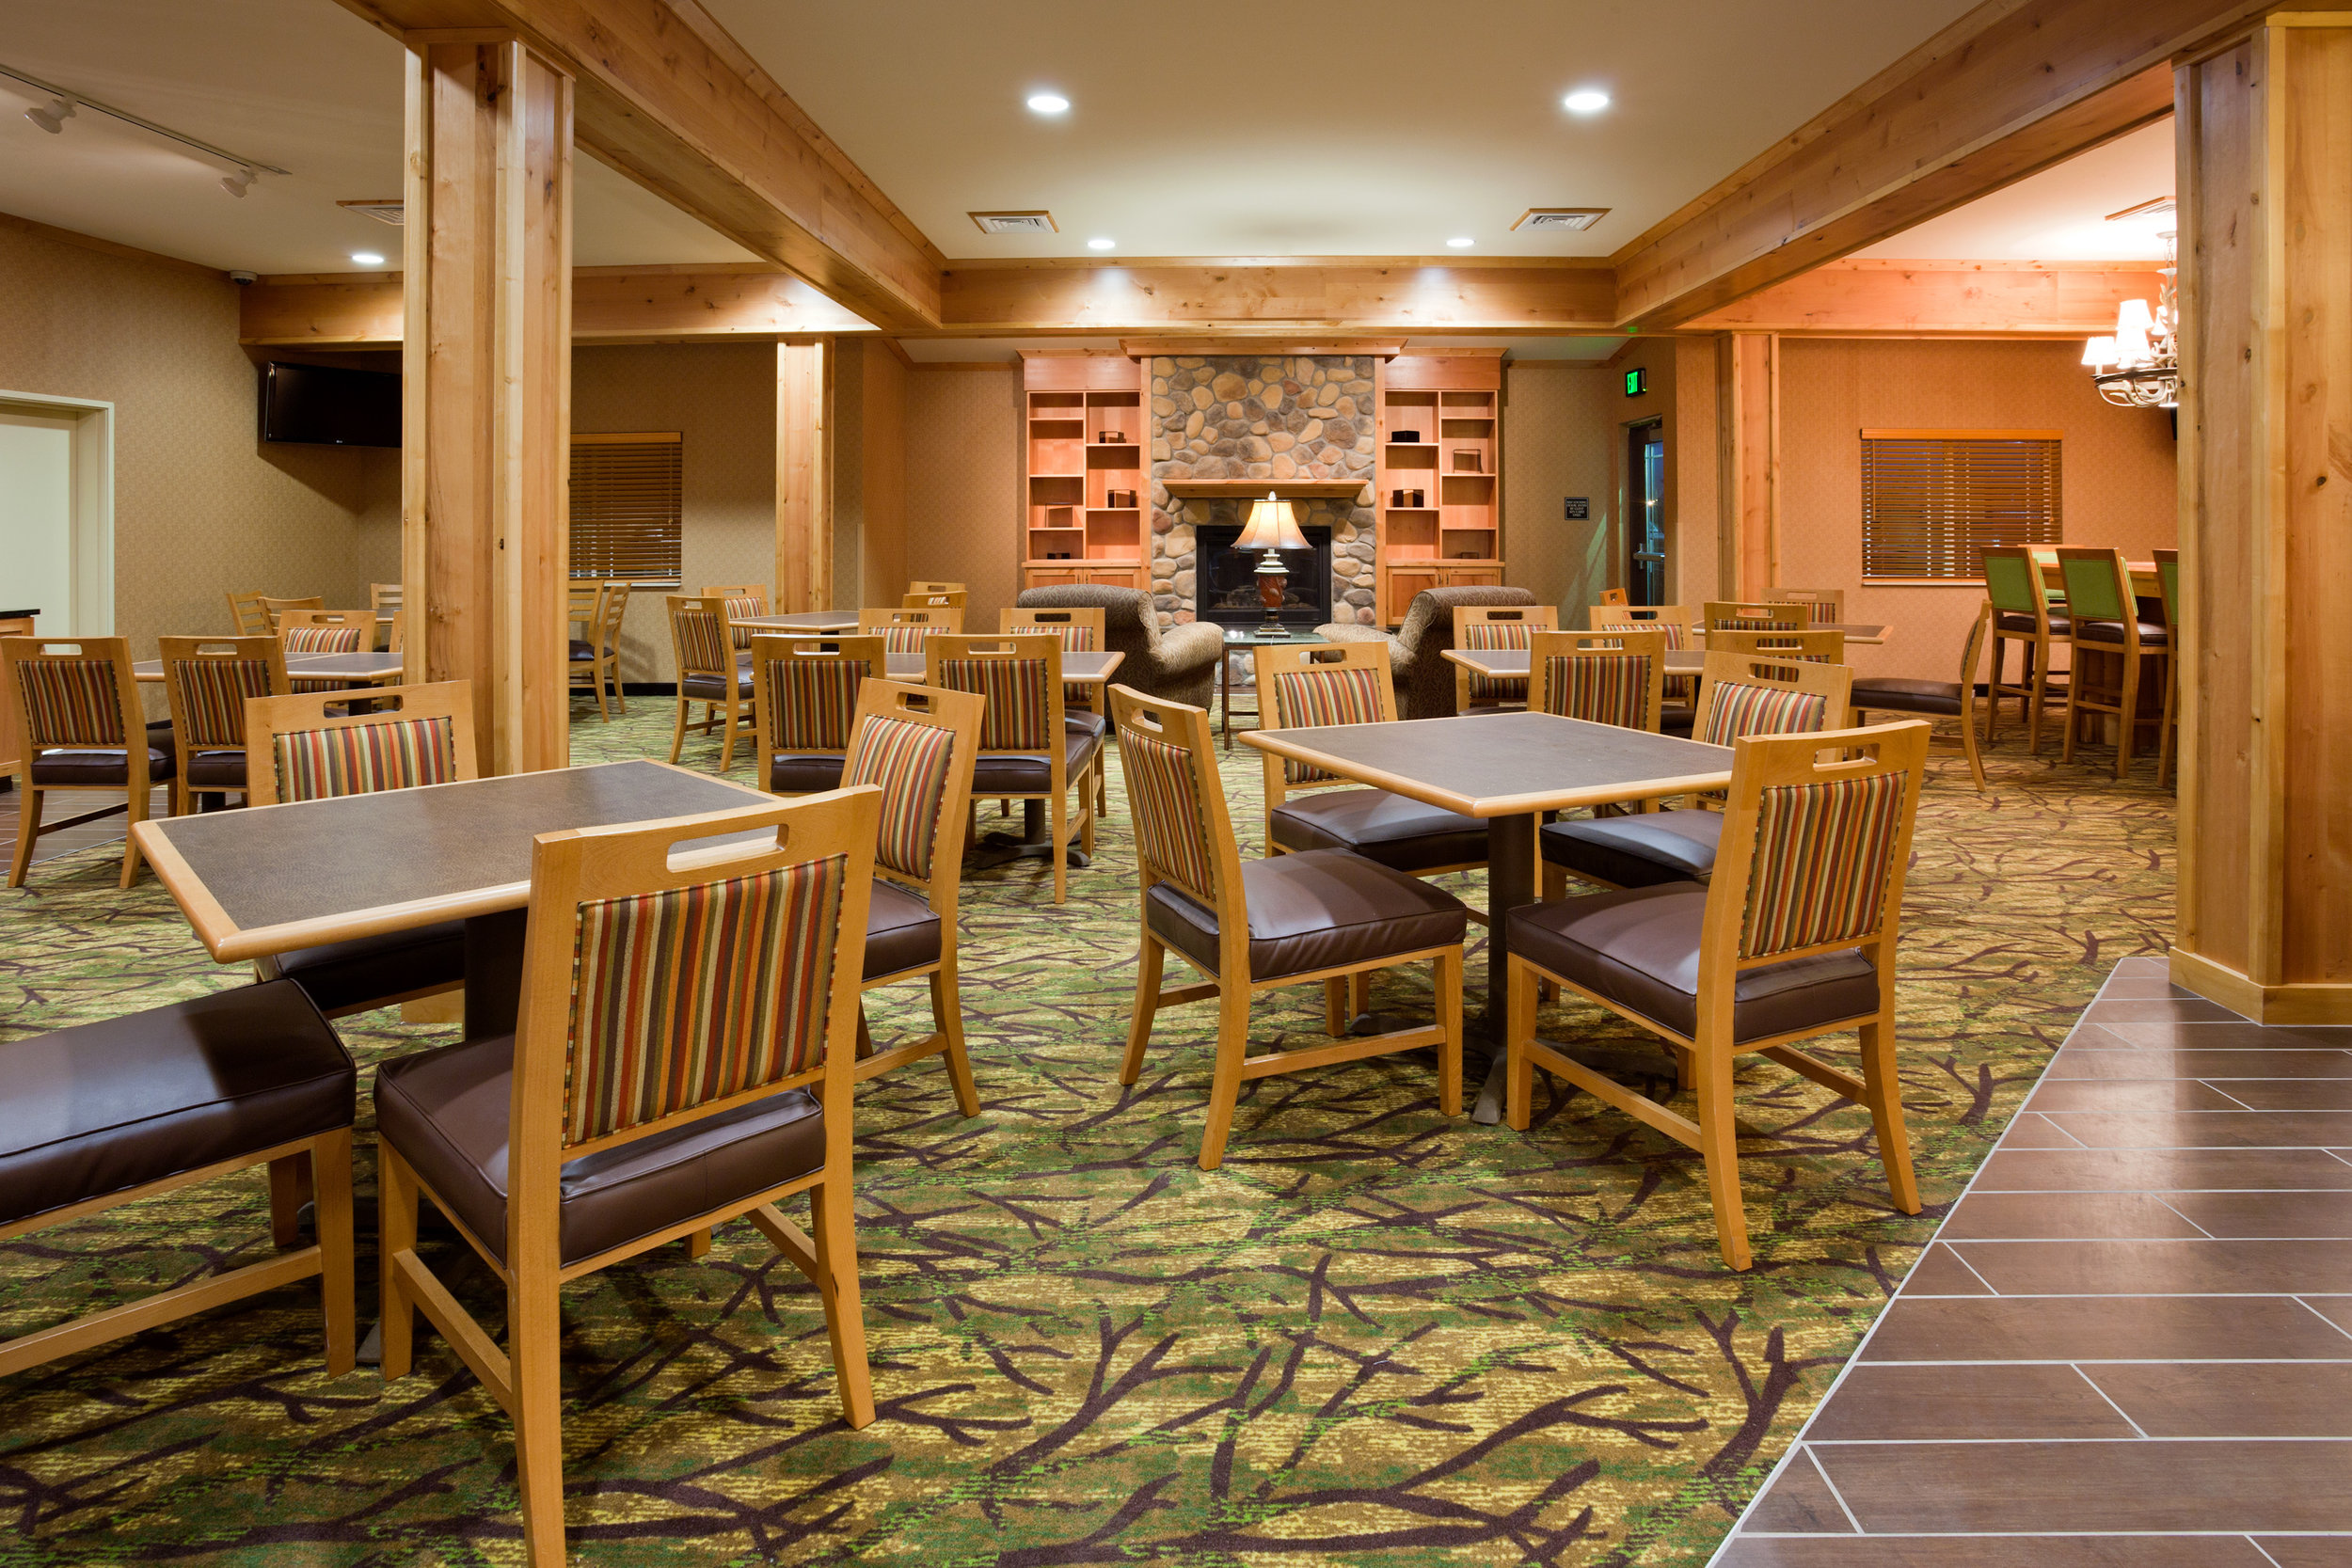 Breakfast seating area in the the Souris Valley Suites in Minot, ND